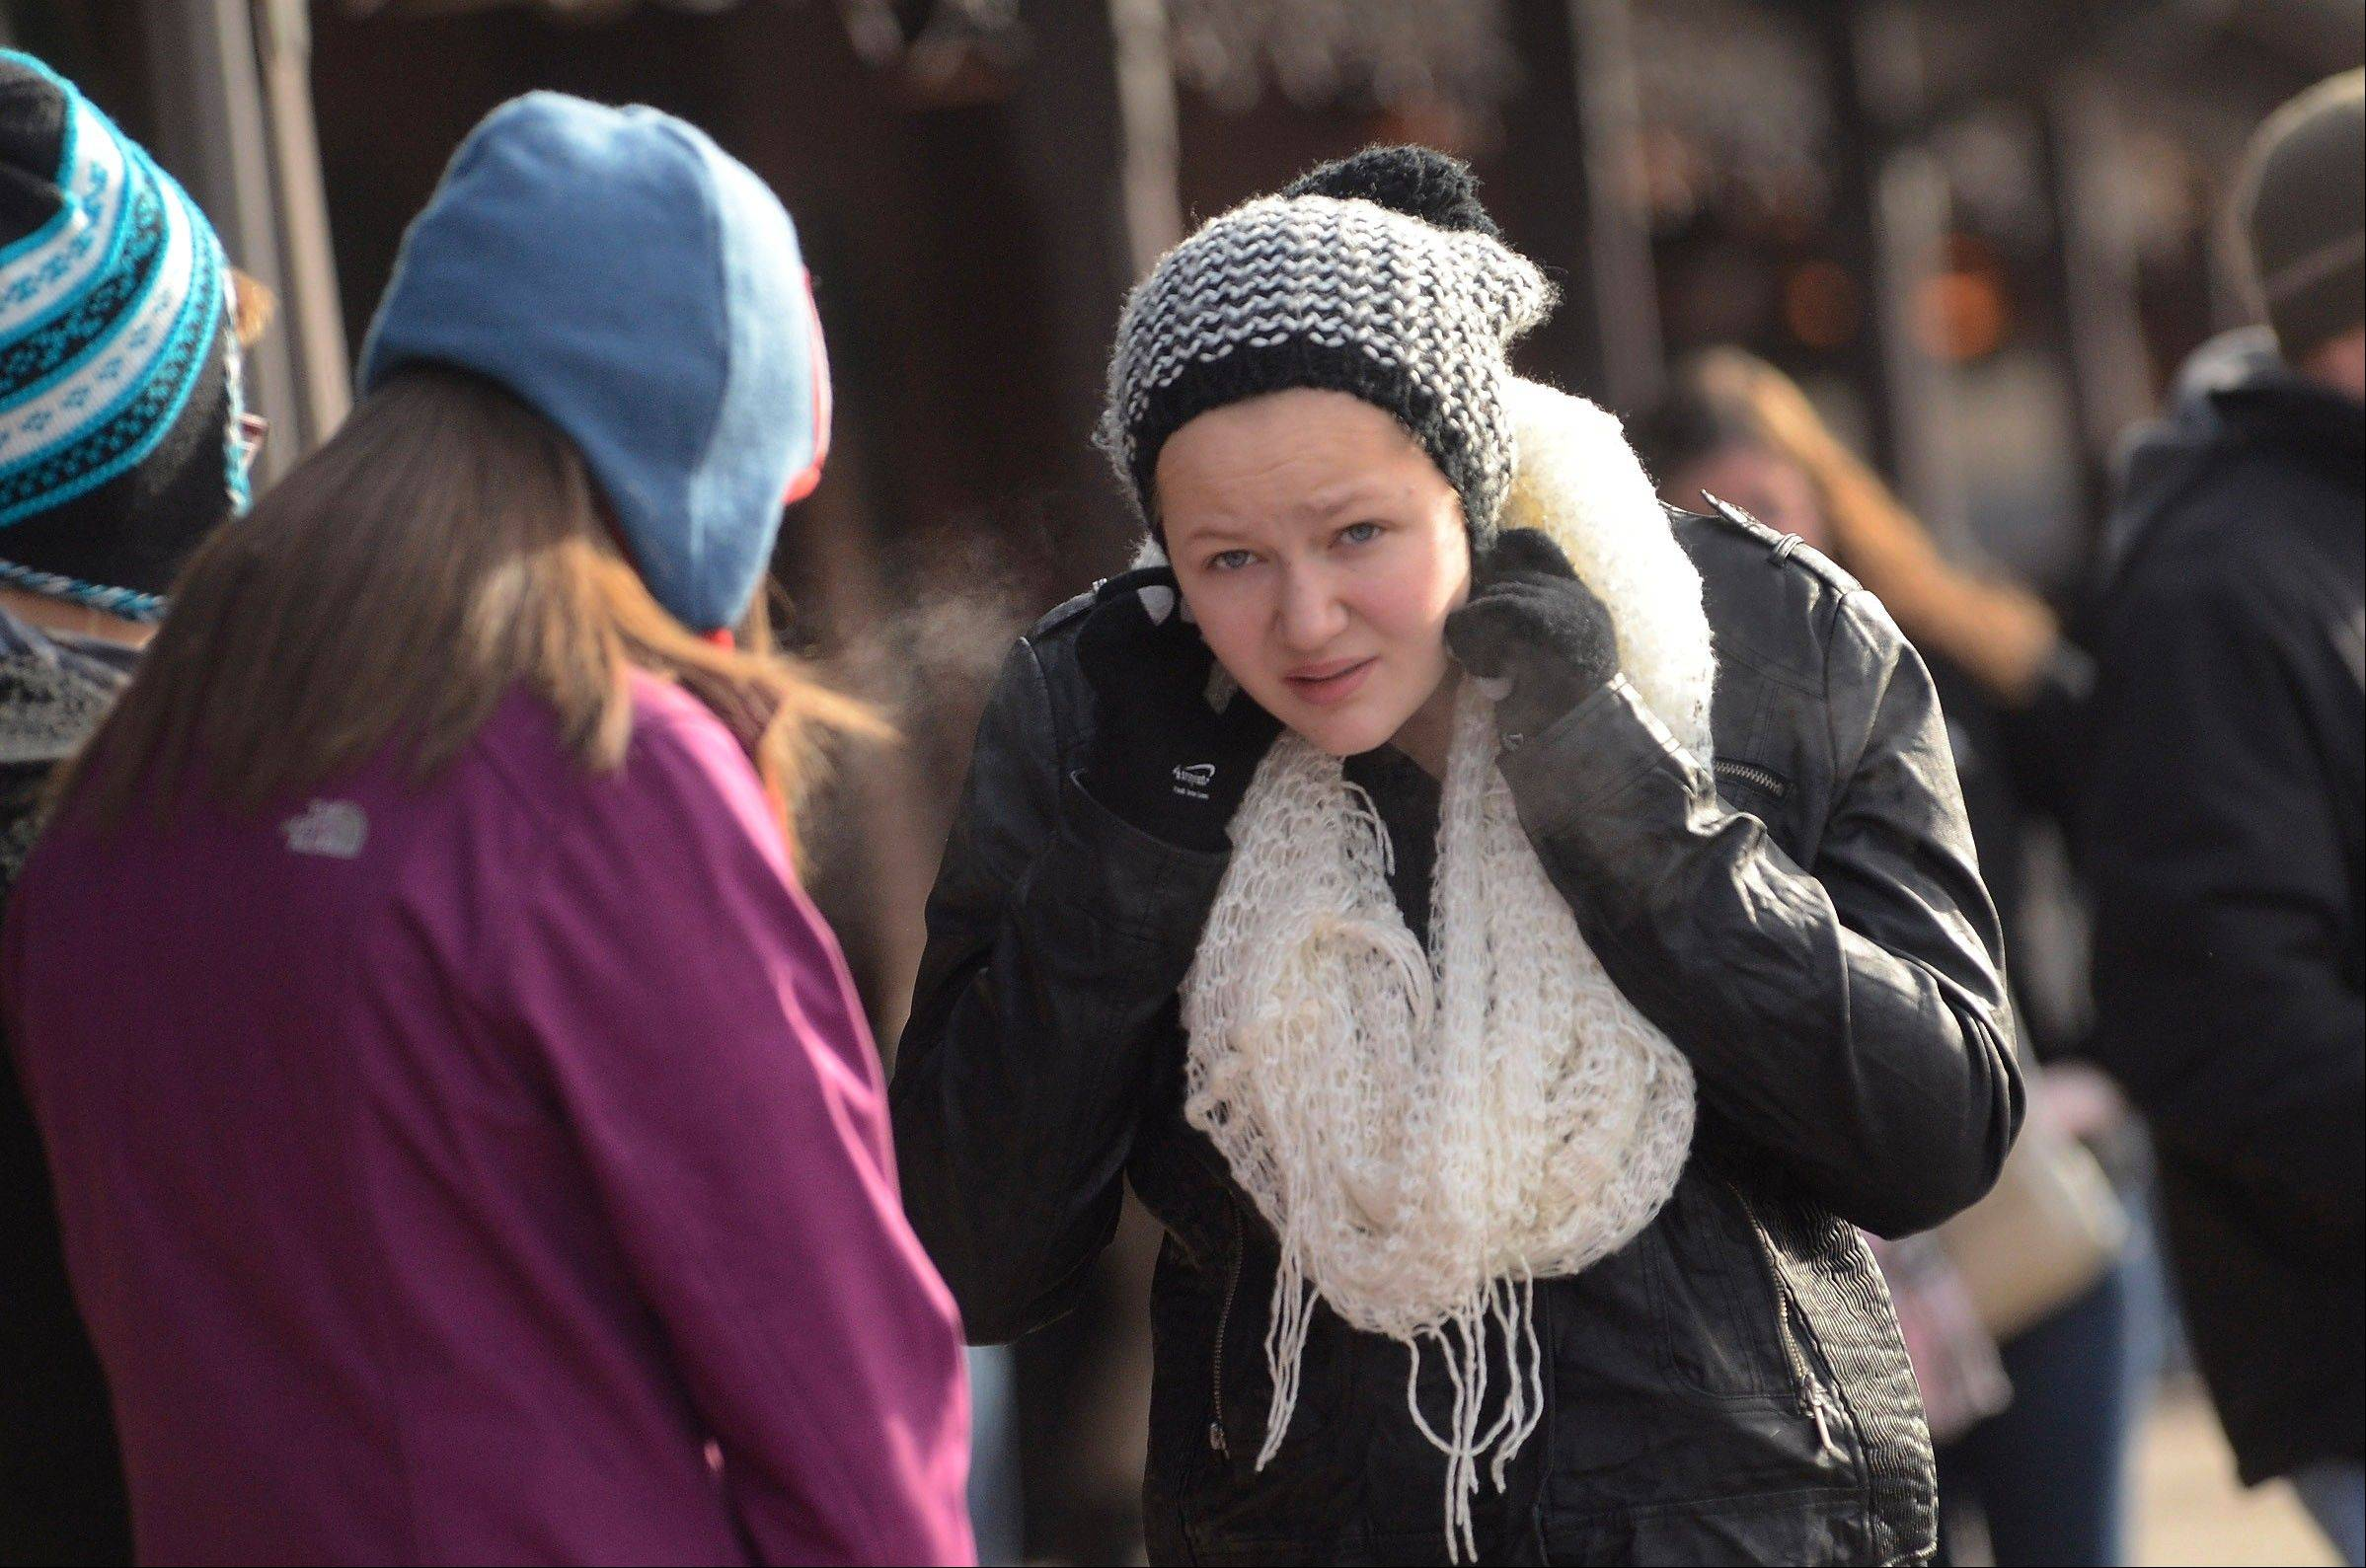 Julia Skwerski bundles up while waiting for a train at the Arlington Heights Metra Station with her mom and sister who are en route to the Walnut Room inside Macy's in downtown Chicago. Weather forecasters say snow will join the frigid temperatures beginning Tuesday afternoon and continuing possibly to Wednesday evening.